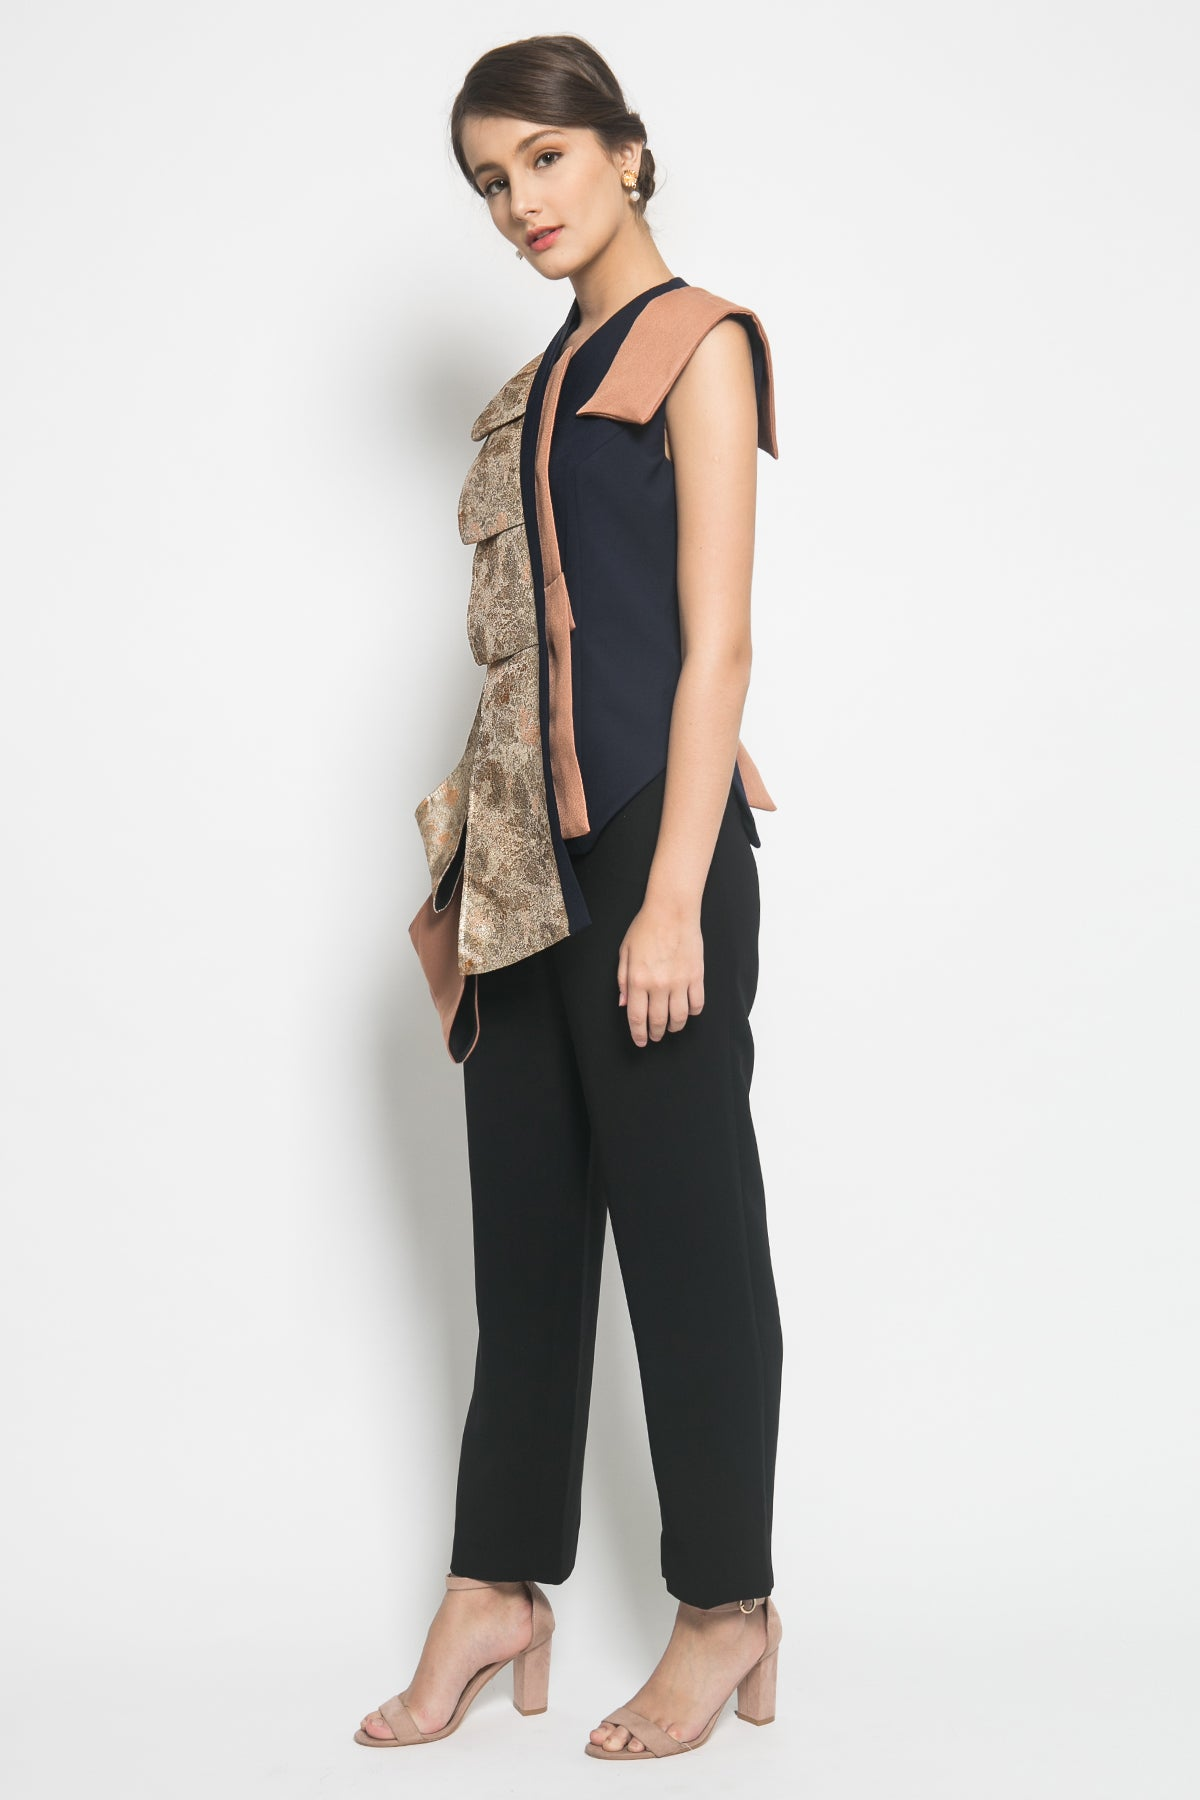 Bloom et Champs Gold Jacquard Lapel Top